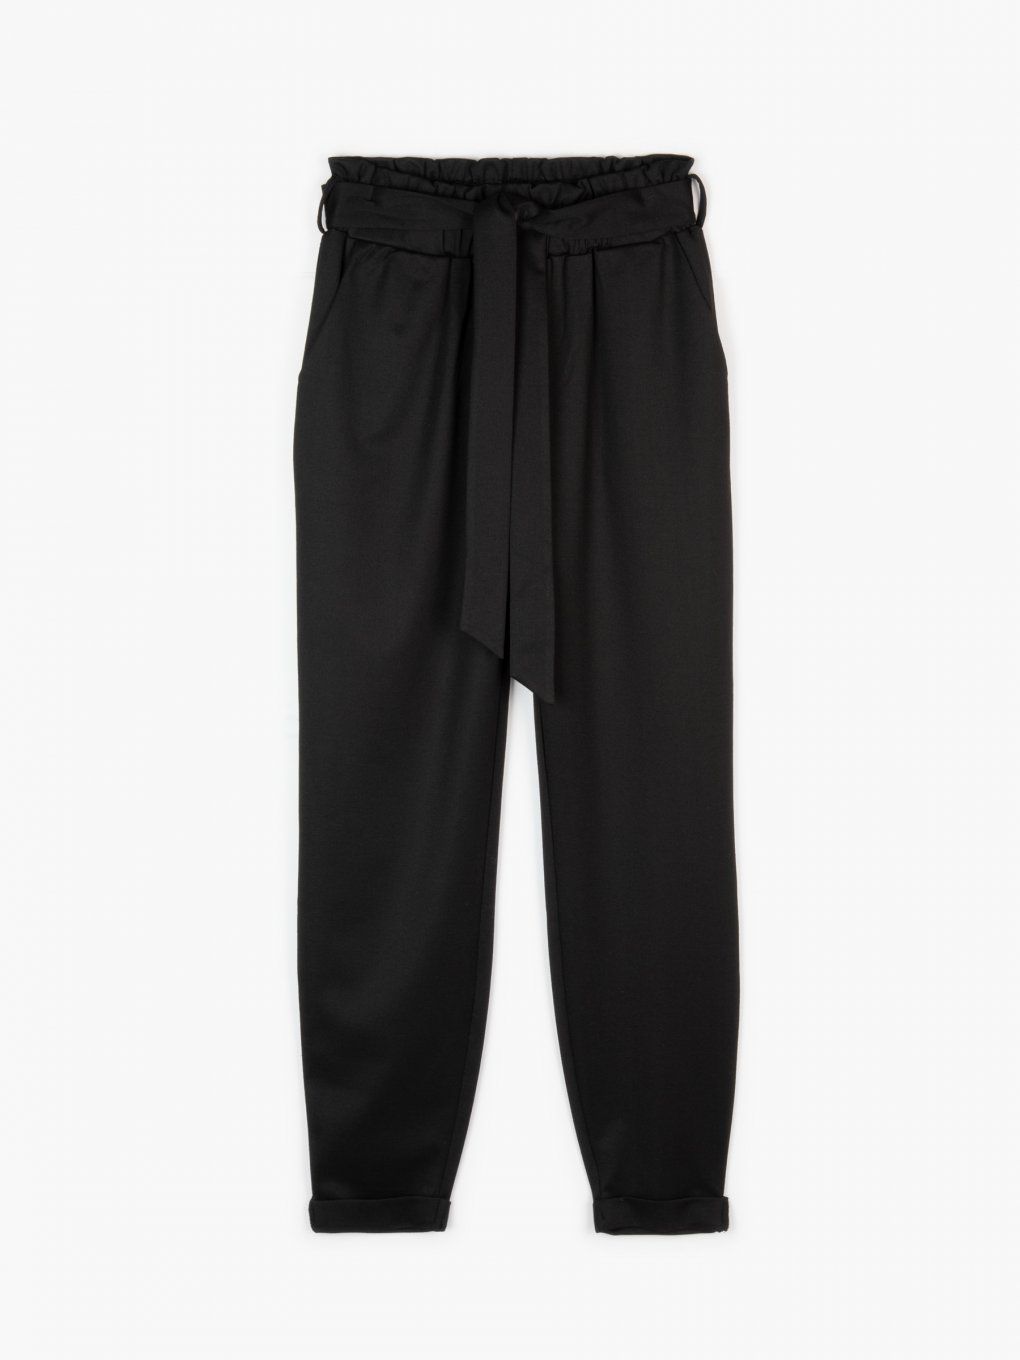 Belted pants with pockets